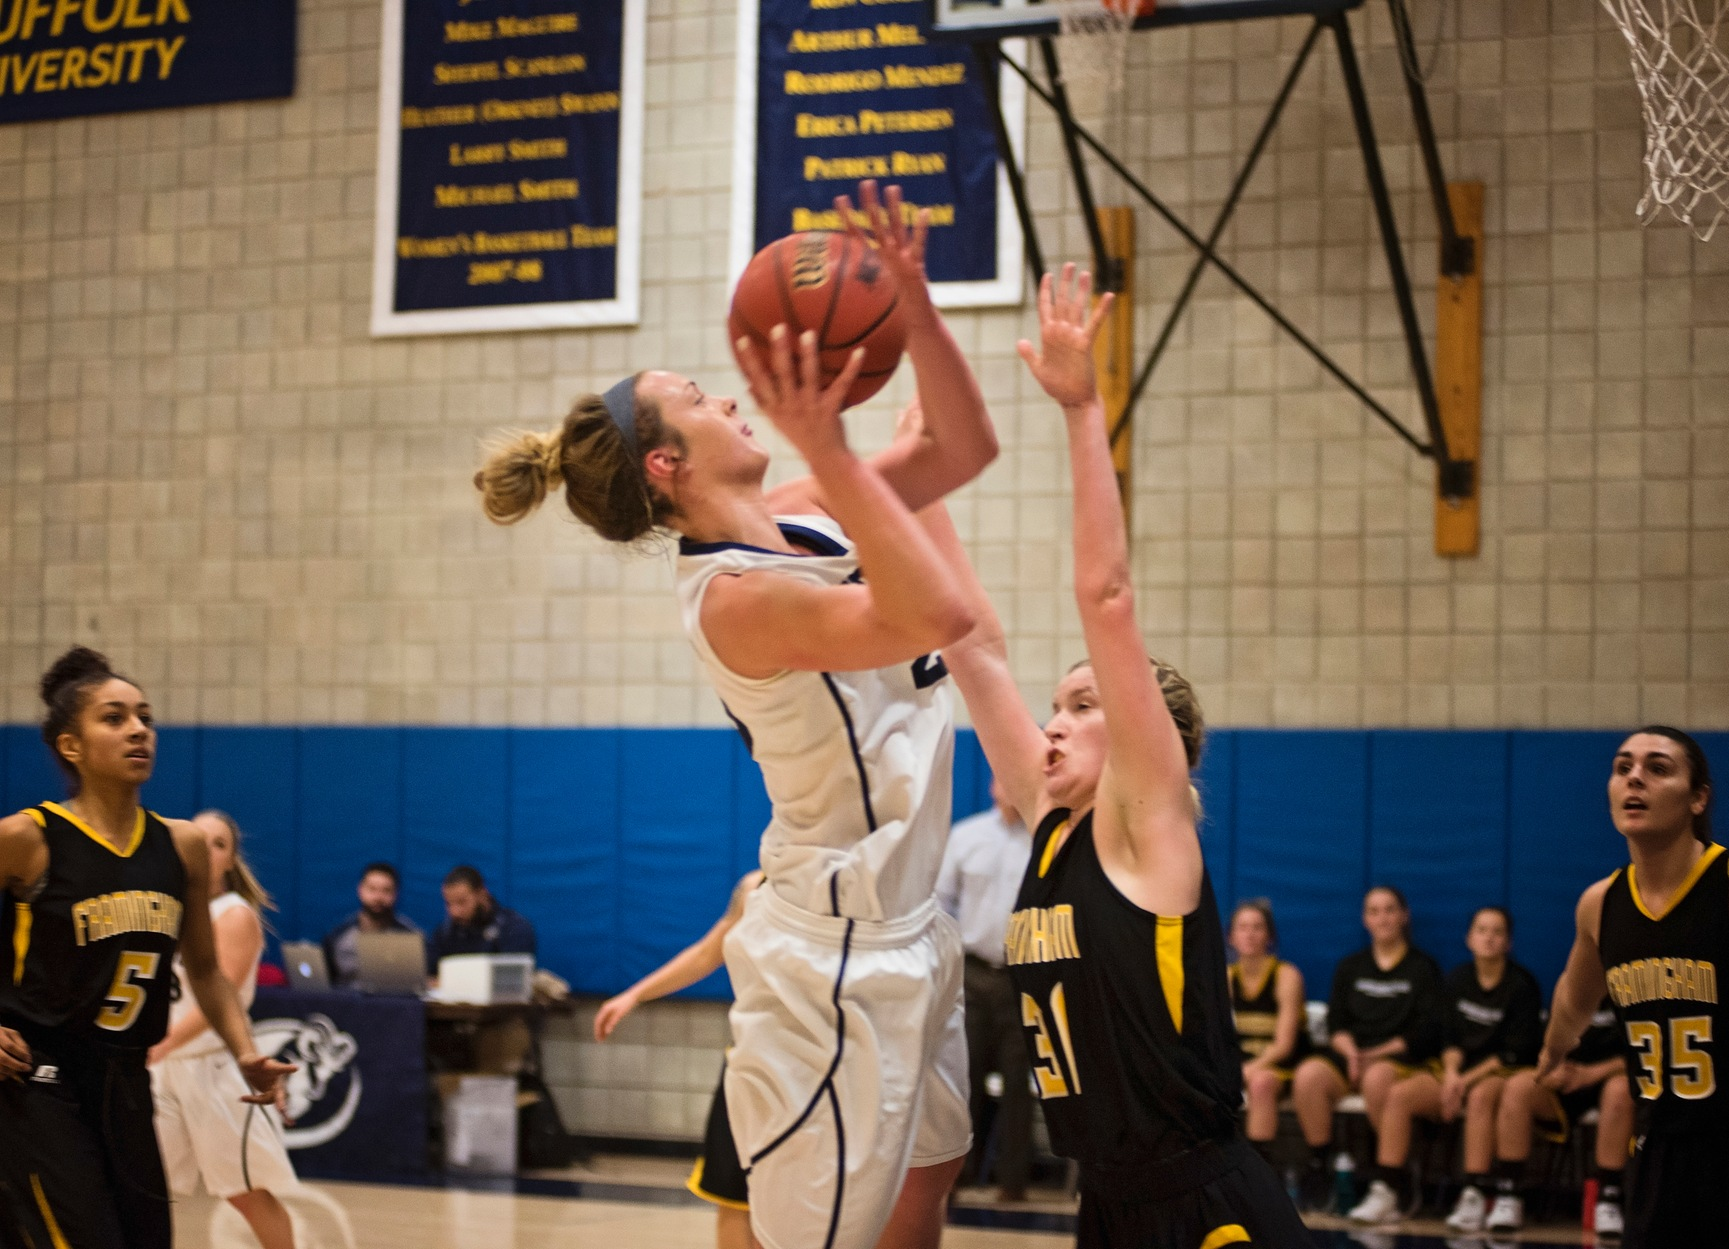 Women's Basketball Wraps Up Road Swing at Anna Maria Tuesday